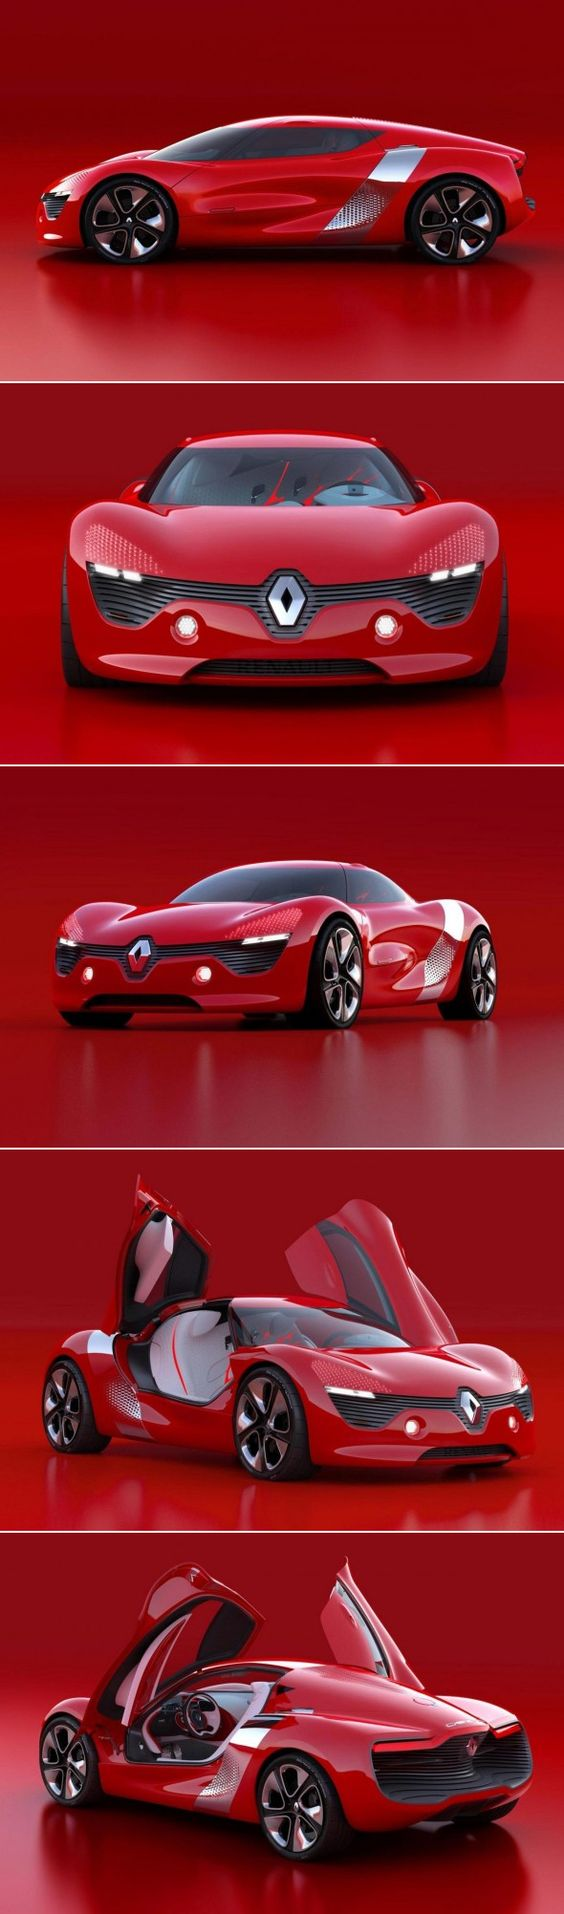 '' Renault DeZir '' Cars Design And Concepts, Best Of New Cars, Awesome Cars